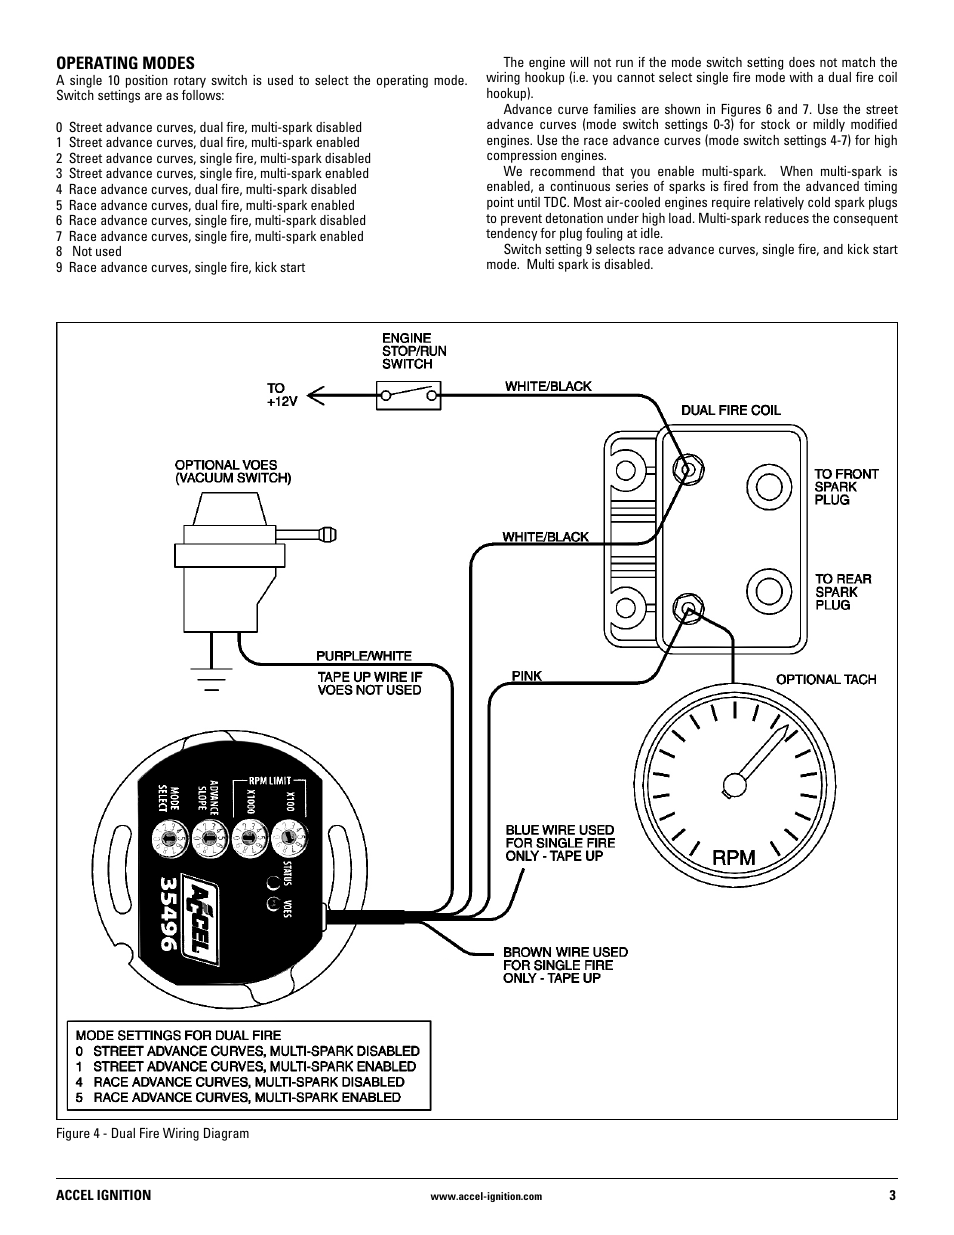 mallory ignition accel ignition 35496 page3?resize\\\\\\\\\\\\\\\=665%2C861 mallory unilite wiring diagram tamahuproject org  at readyjetset.co